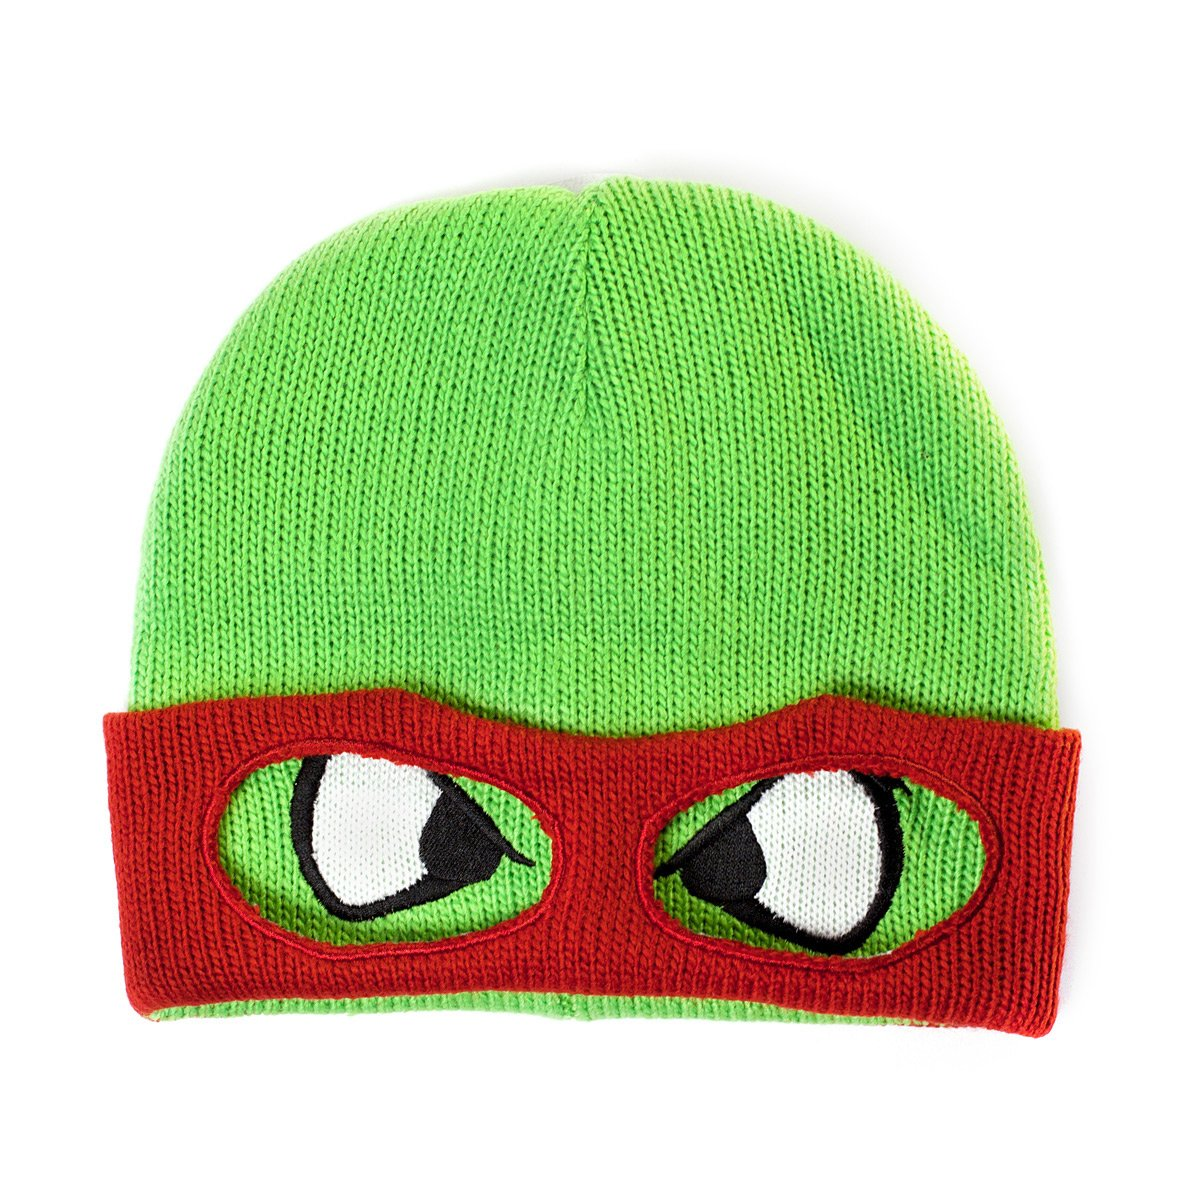 7e4816beb20 Teenage Mutant Ninja Turtles Beanie Raphael  Amazon.co.uk  Toys   Games